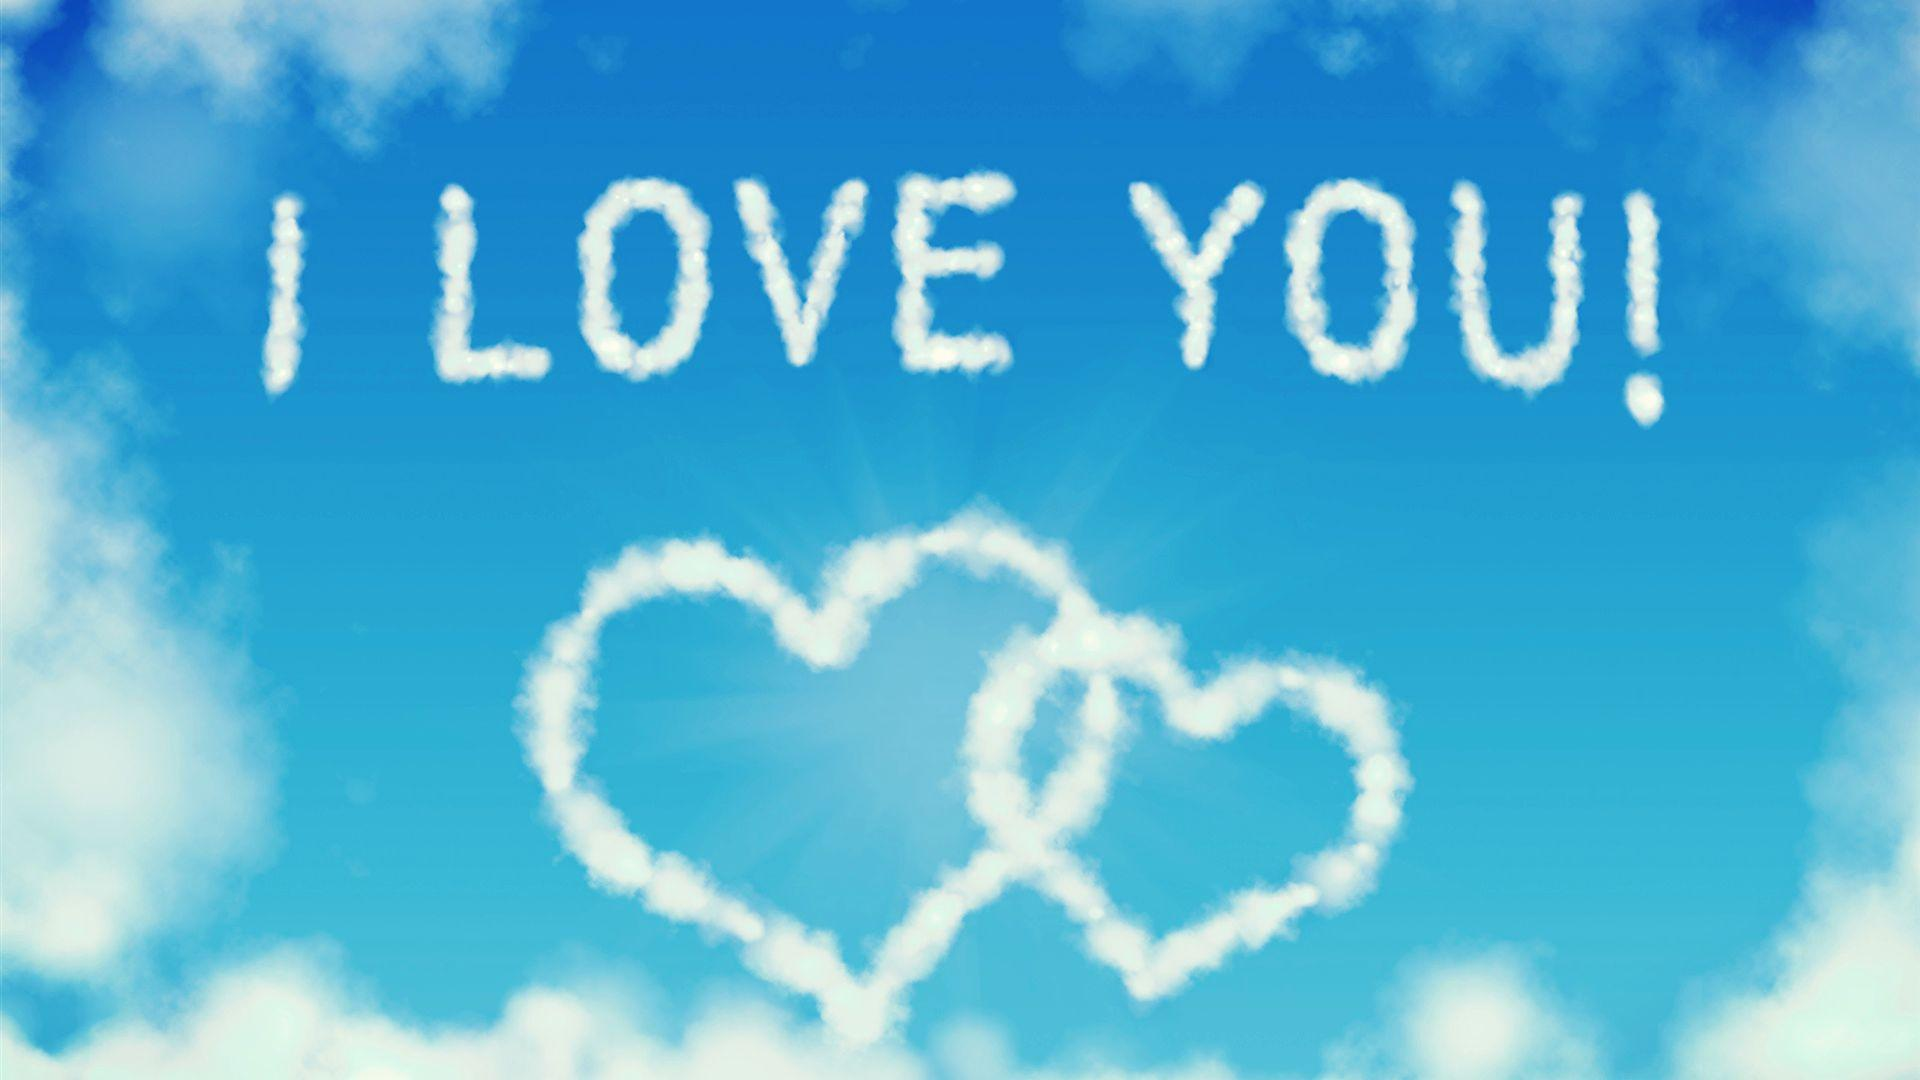 Beautiful Wallpaper I Love You : I Love You Wallpapers - Wallpaper cave